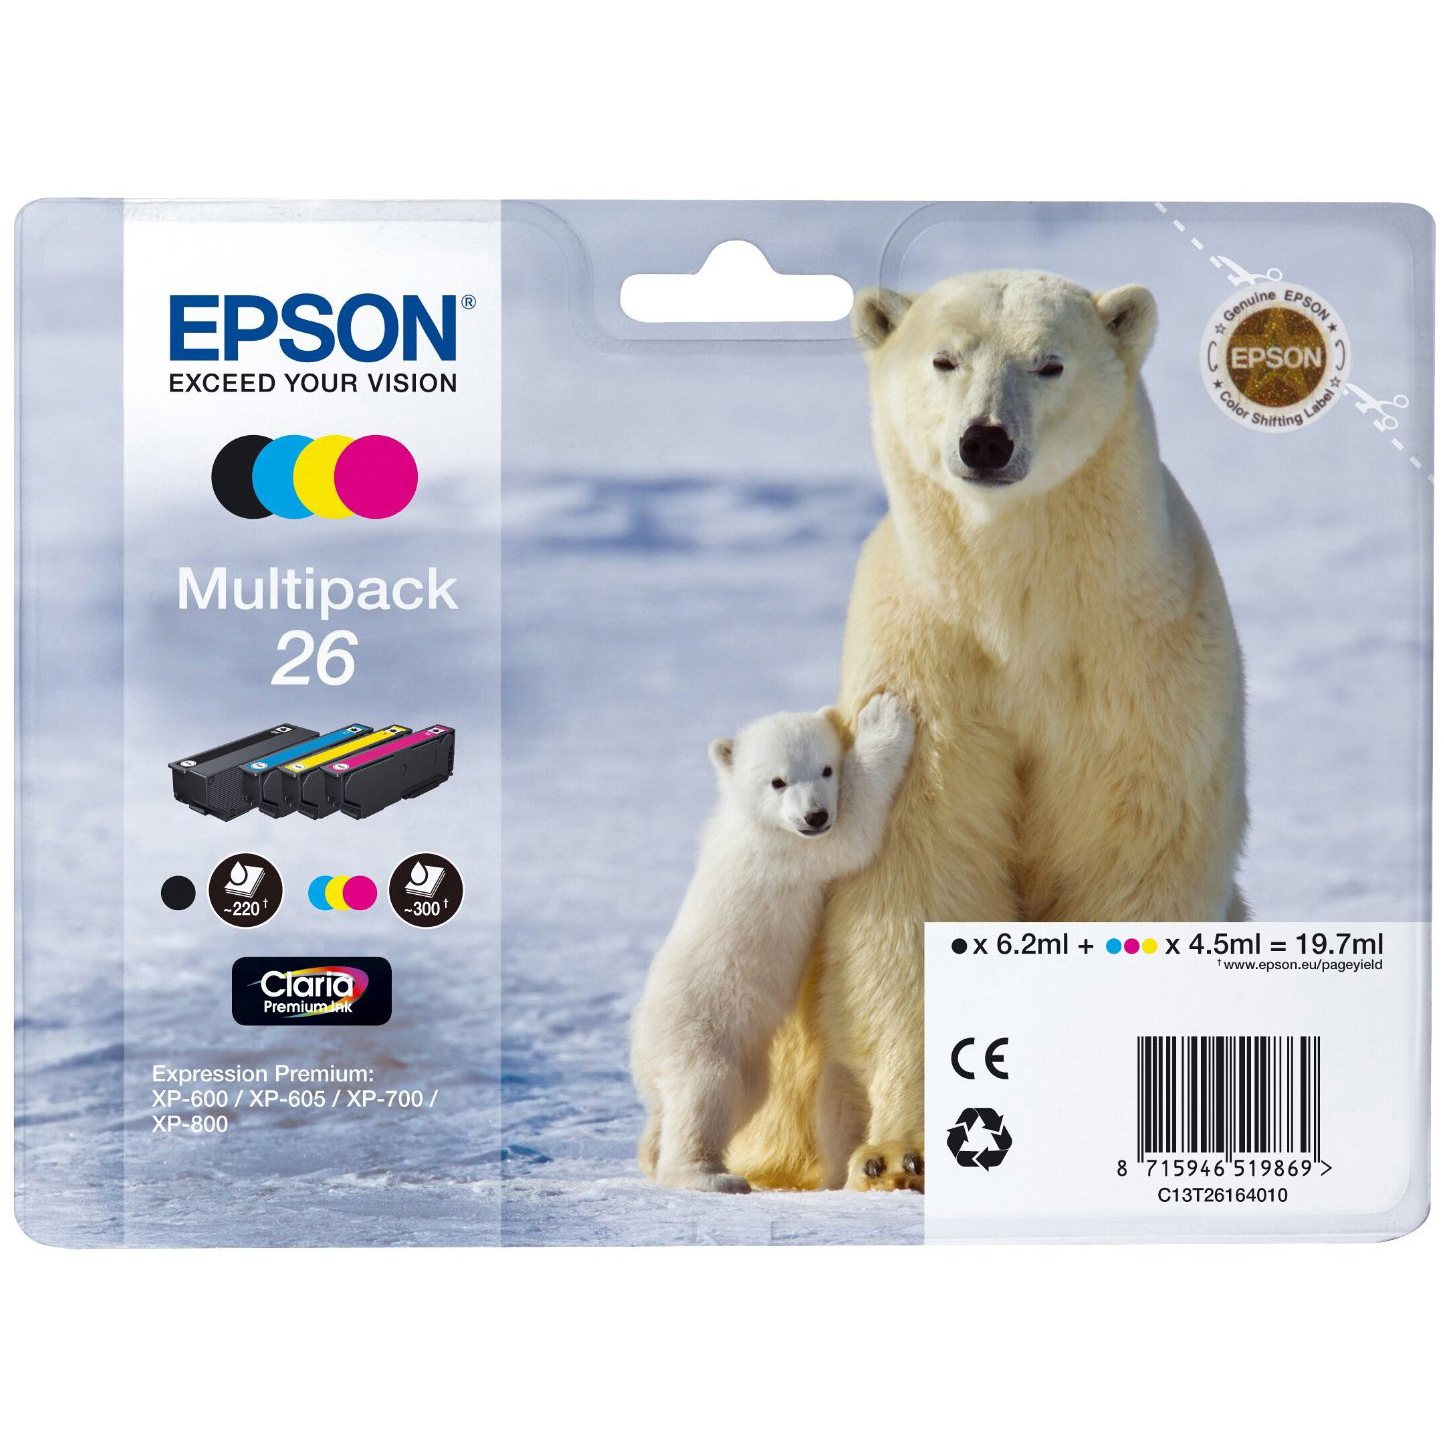 Original Epson 26 CMYK Multipack Ink Cartridges (C13T26164010)